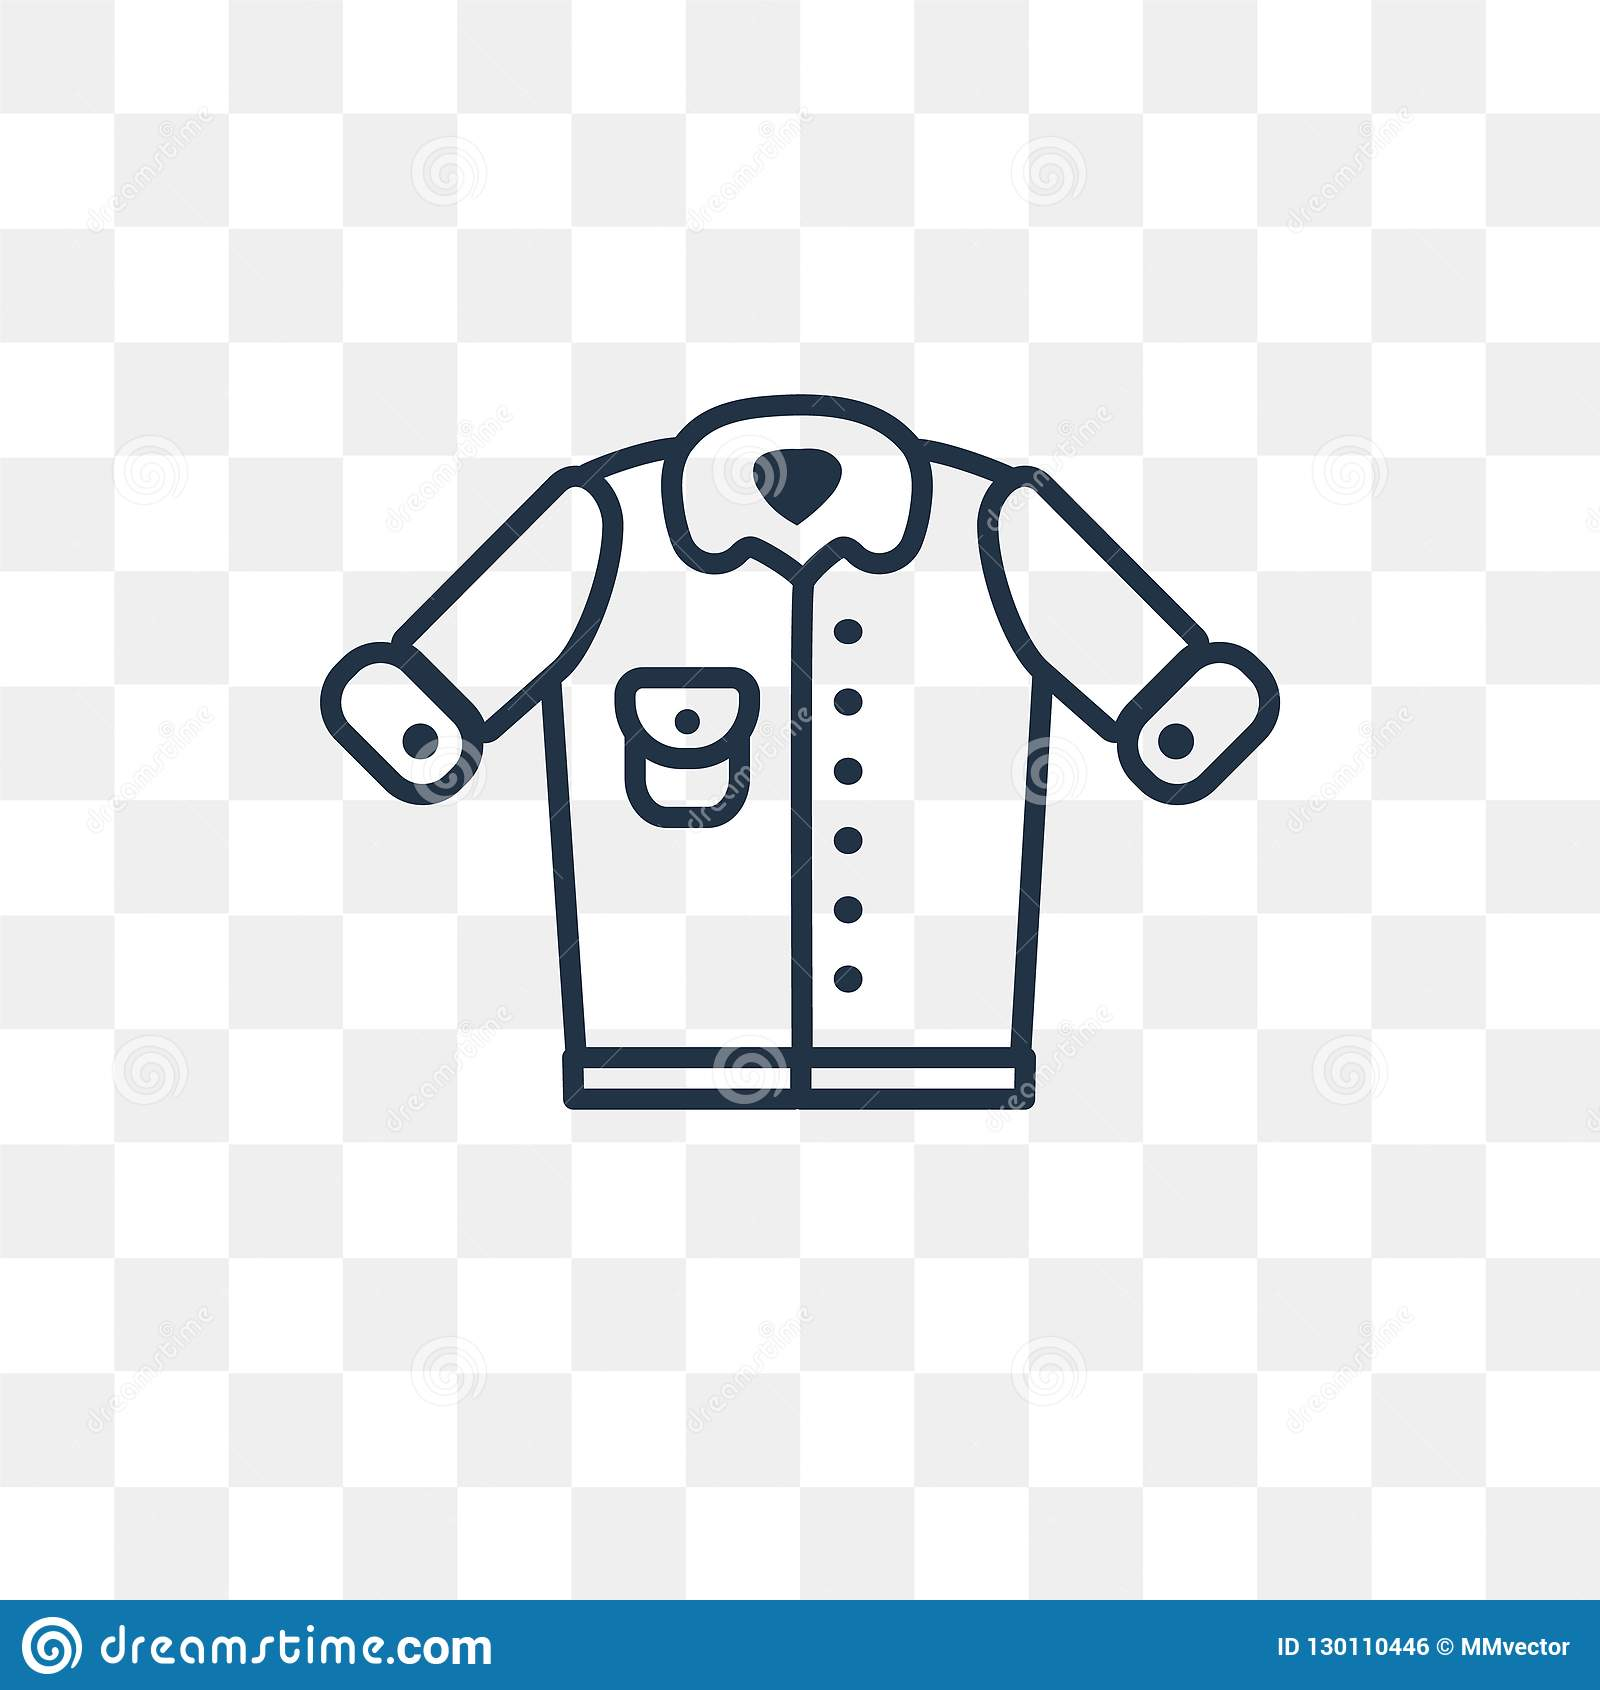 Denim Jacket Vector Icon Isolated On Transparent Background Lin Stock Vector Illustration Of Clothing Doodle 130110446